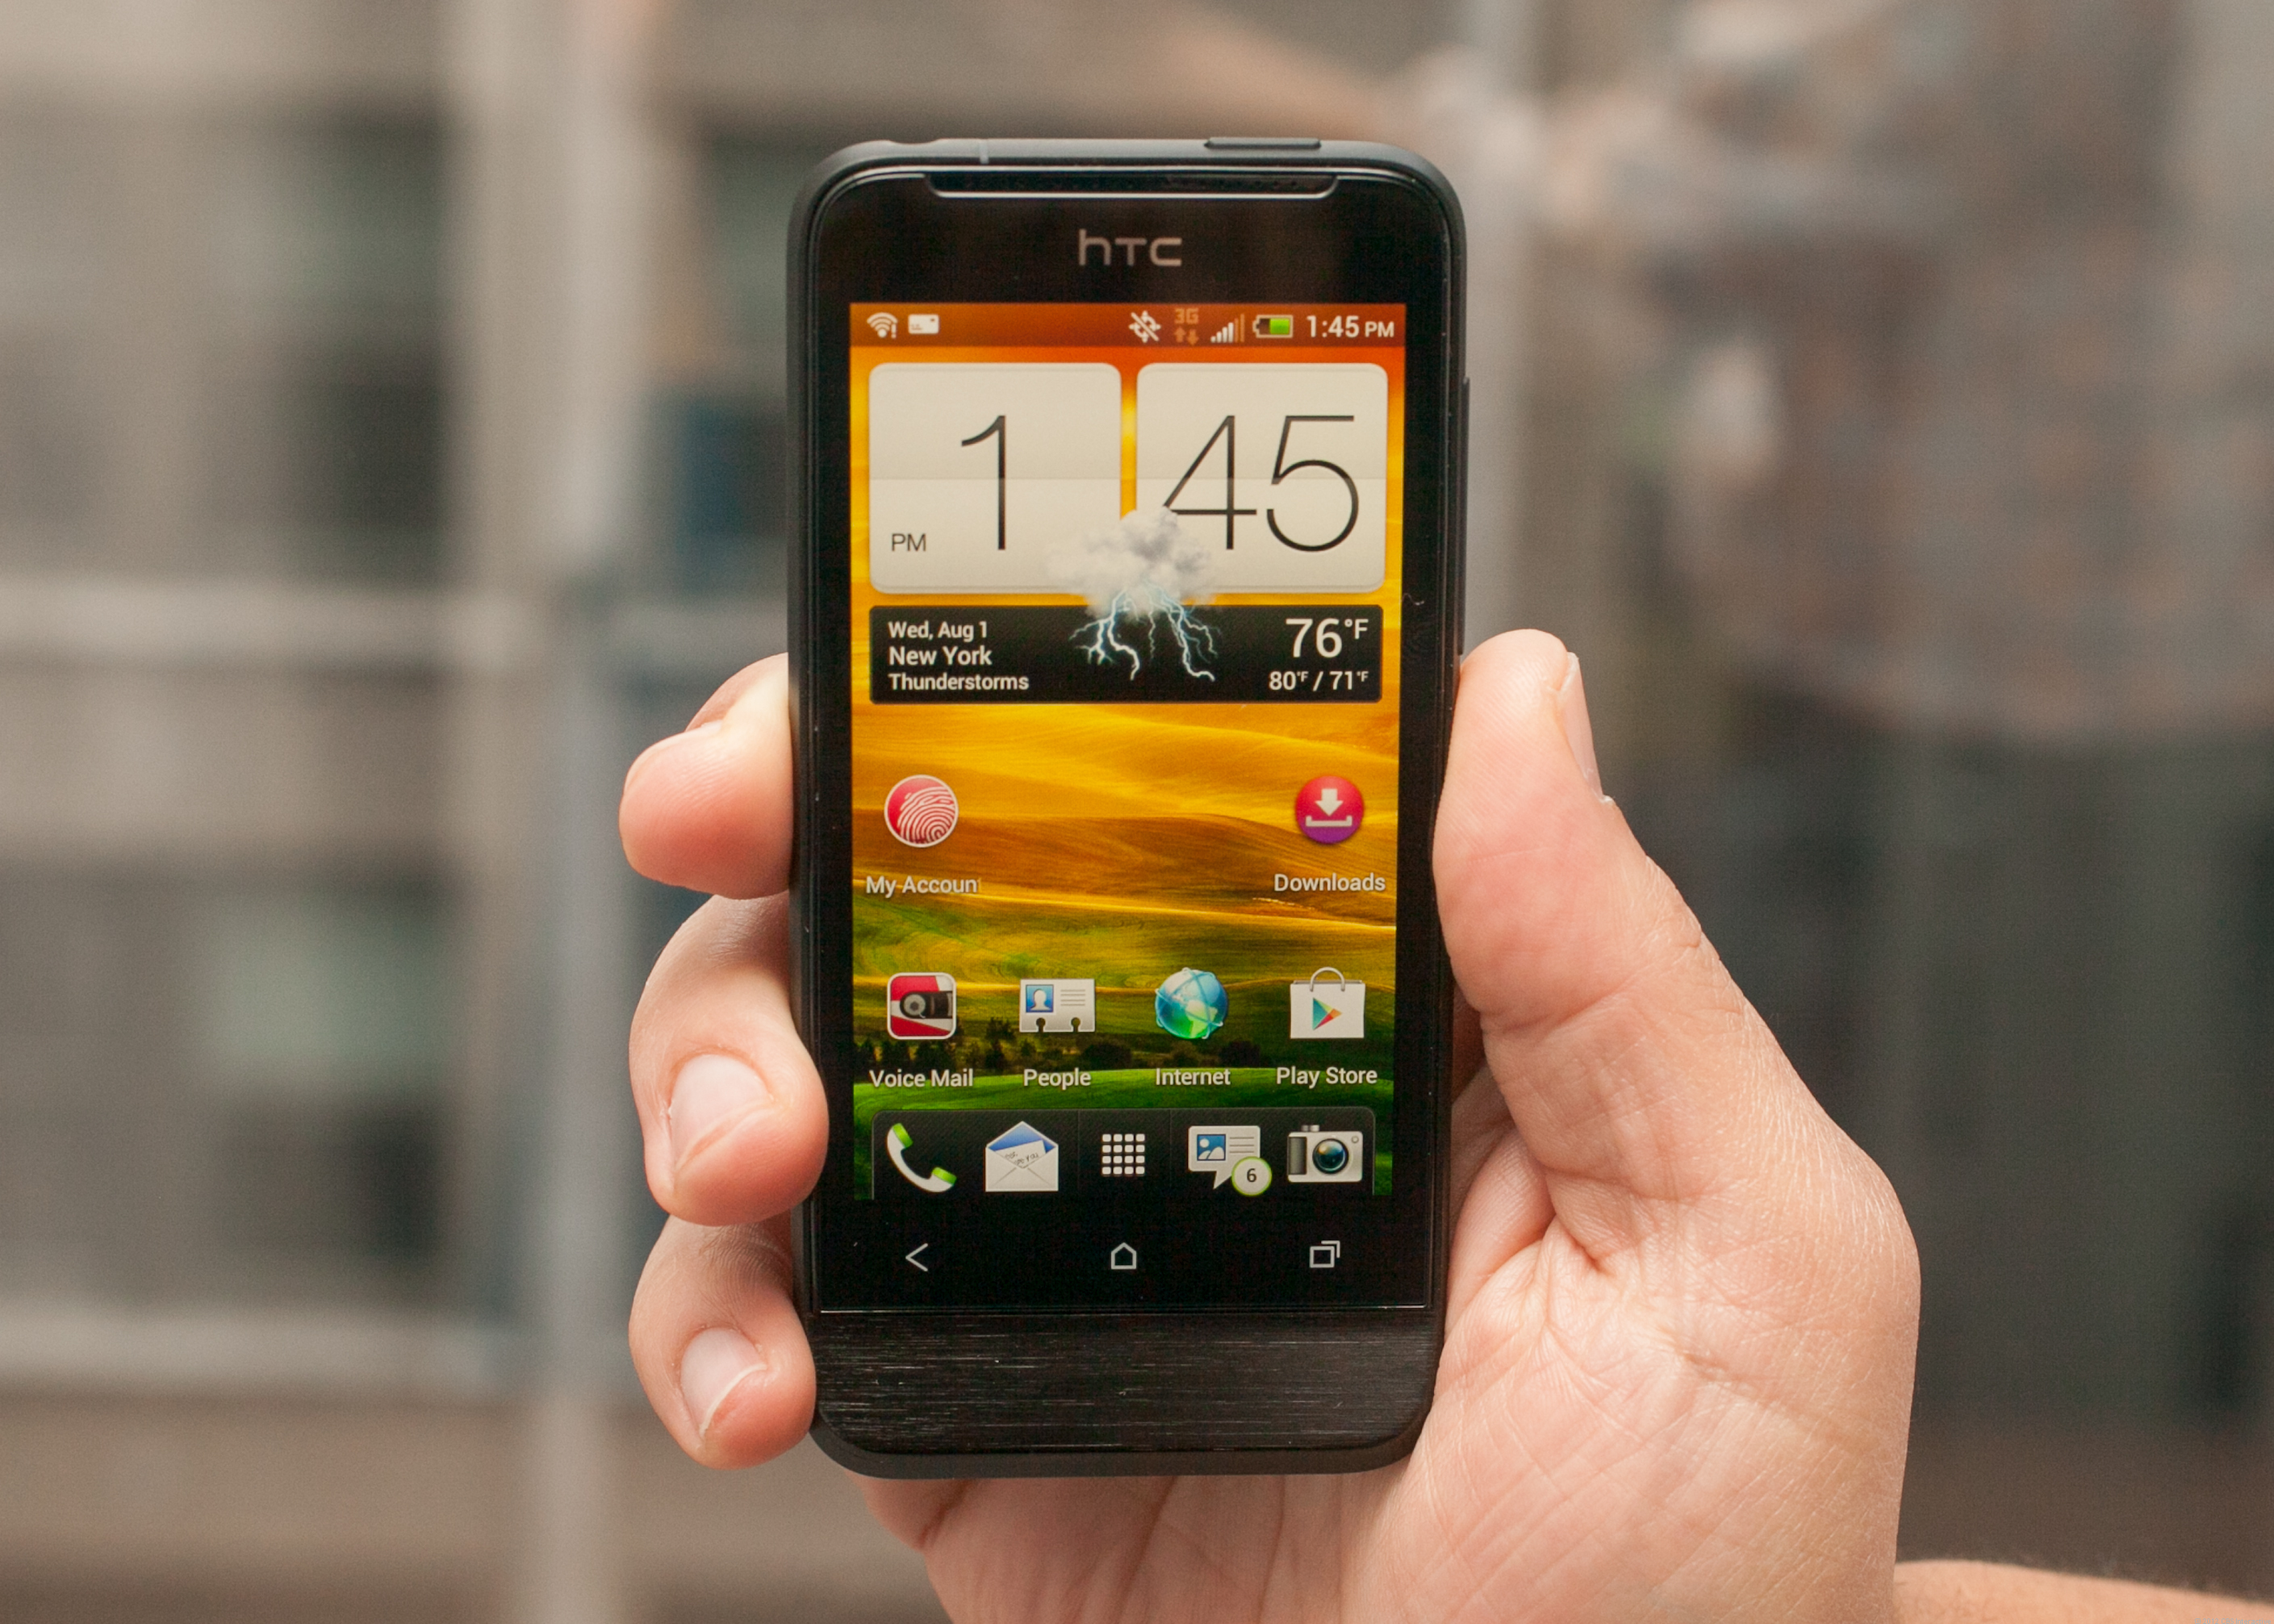 HTC One V (Cricket Wireless)